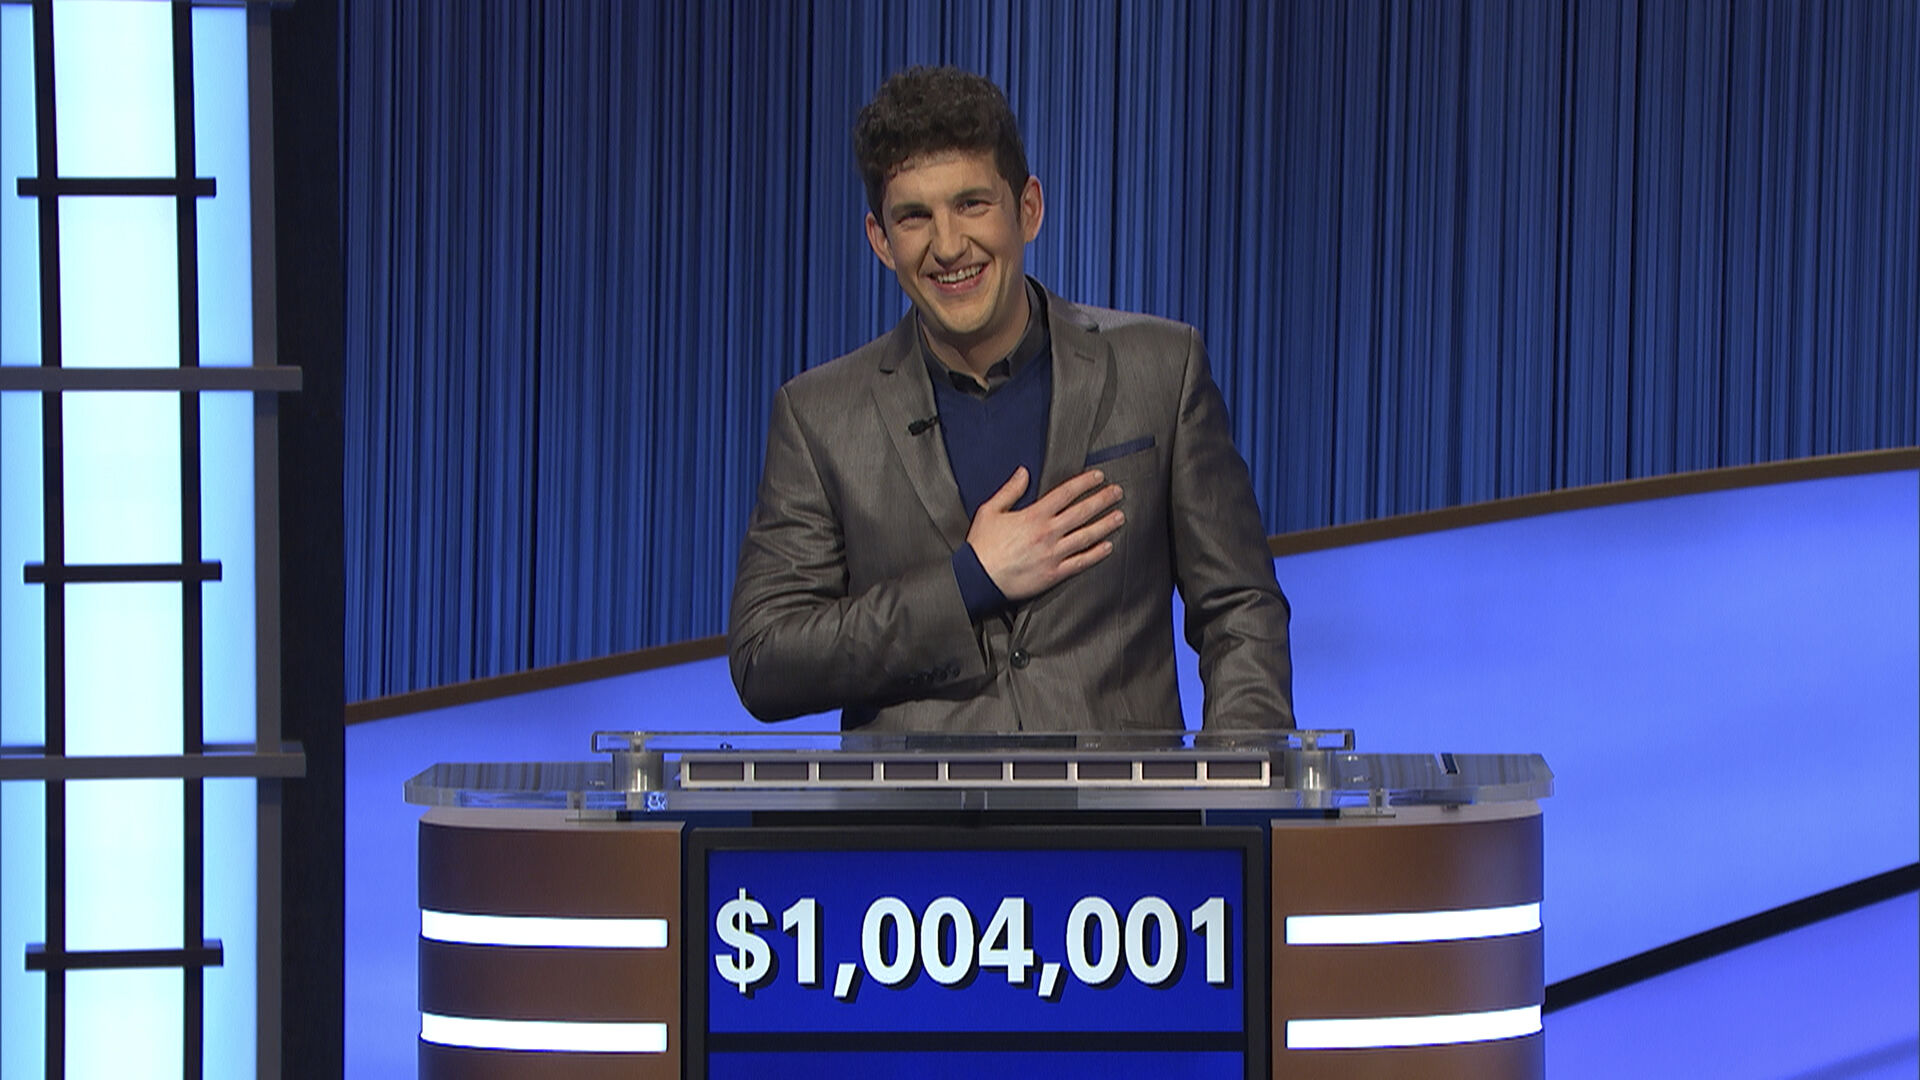 """<p>This photo provided by Jeopardy Productions Inc. shows """"Jeopardy!"""" contestant Matt Amodio's after his total win amount was announced, Friday, Sept. 24, 2021. Amodio, a fifth-year computer science Ph.D student at Yale University, won ,800 for his 28th victory, bringing his total winnings to ,004,001.</p>"""